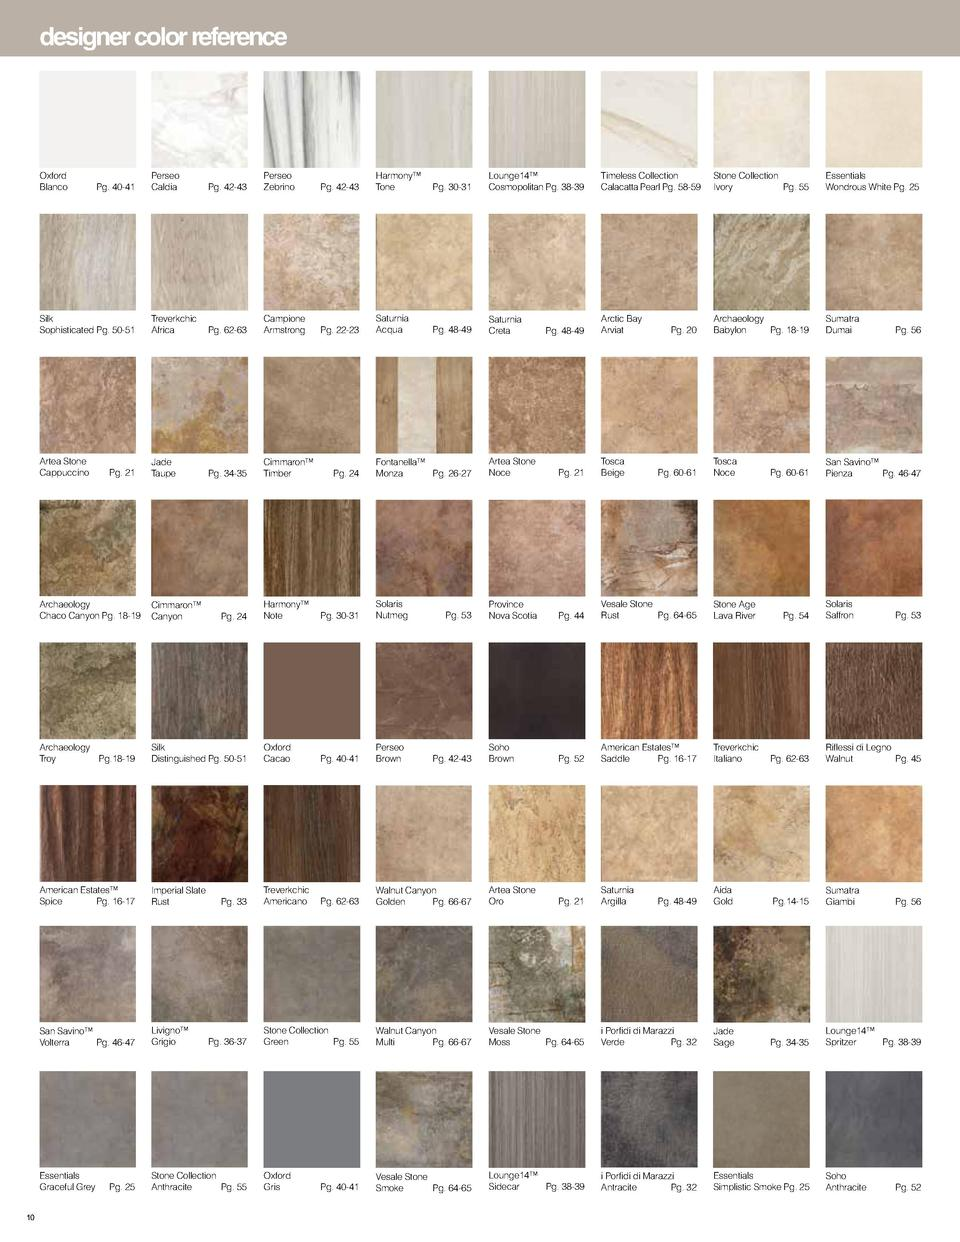 designer color reference  Oxford Blanco   Perseo Caldia   Pg. 42-43  Perseo Zebrino   Pg. 42-43  Harmony    Tone   Pg. 30-...